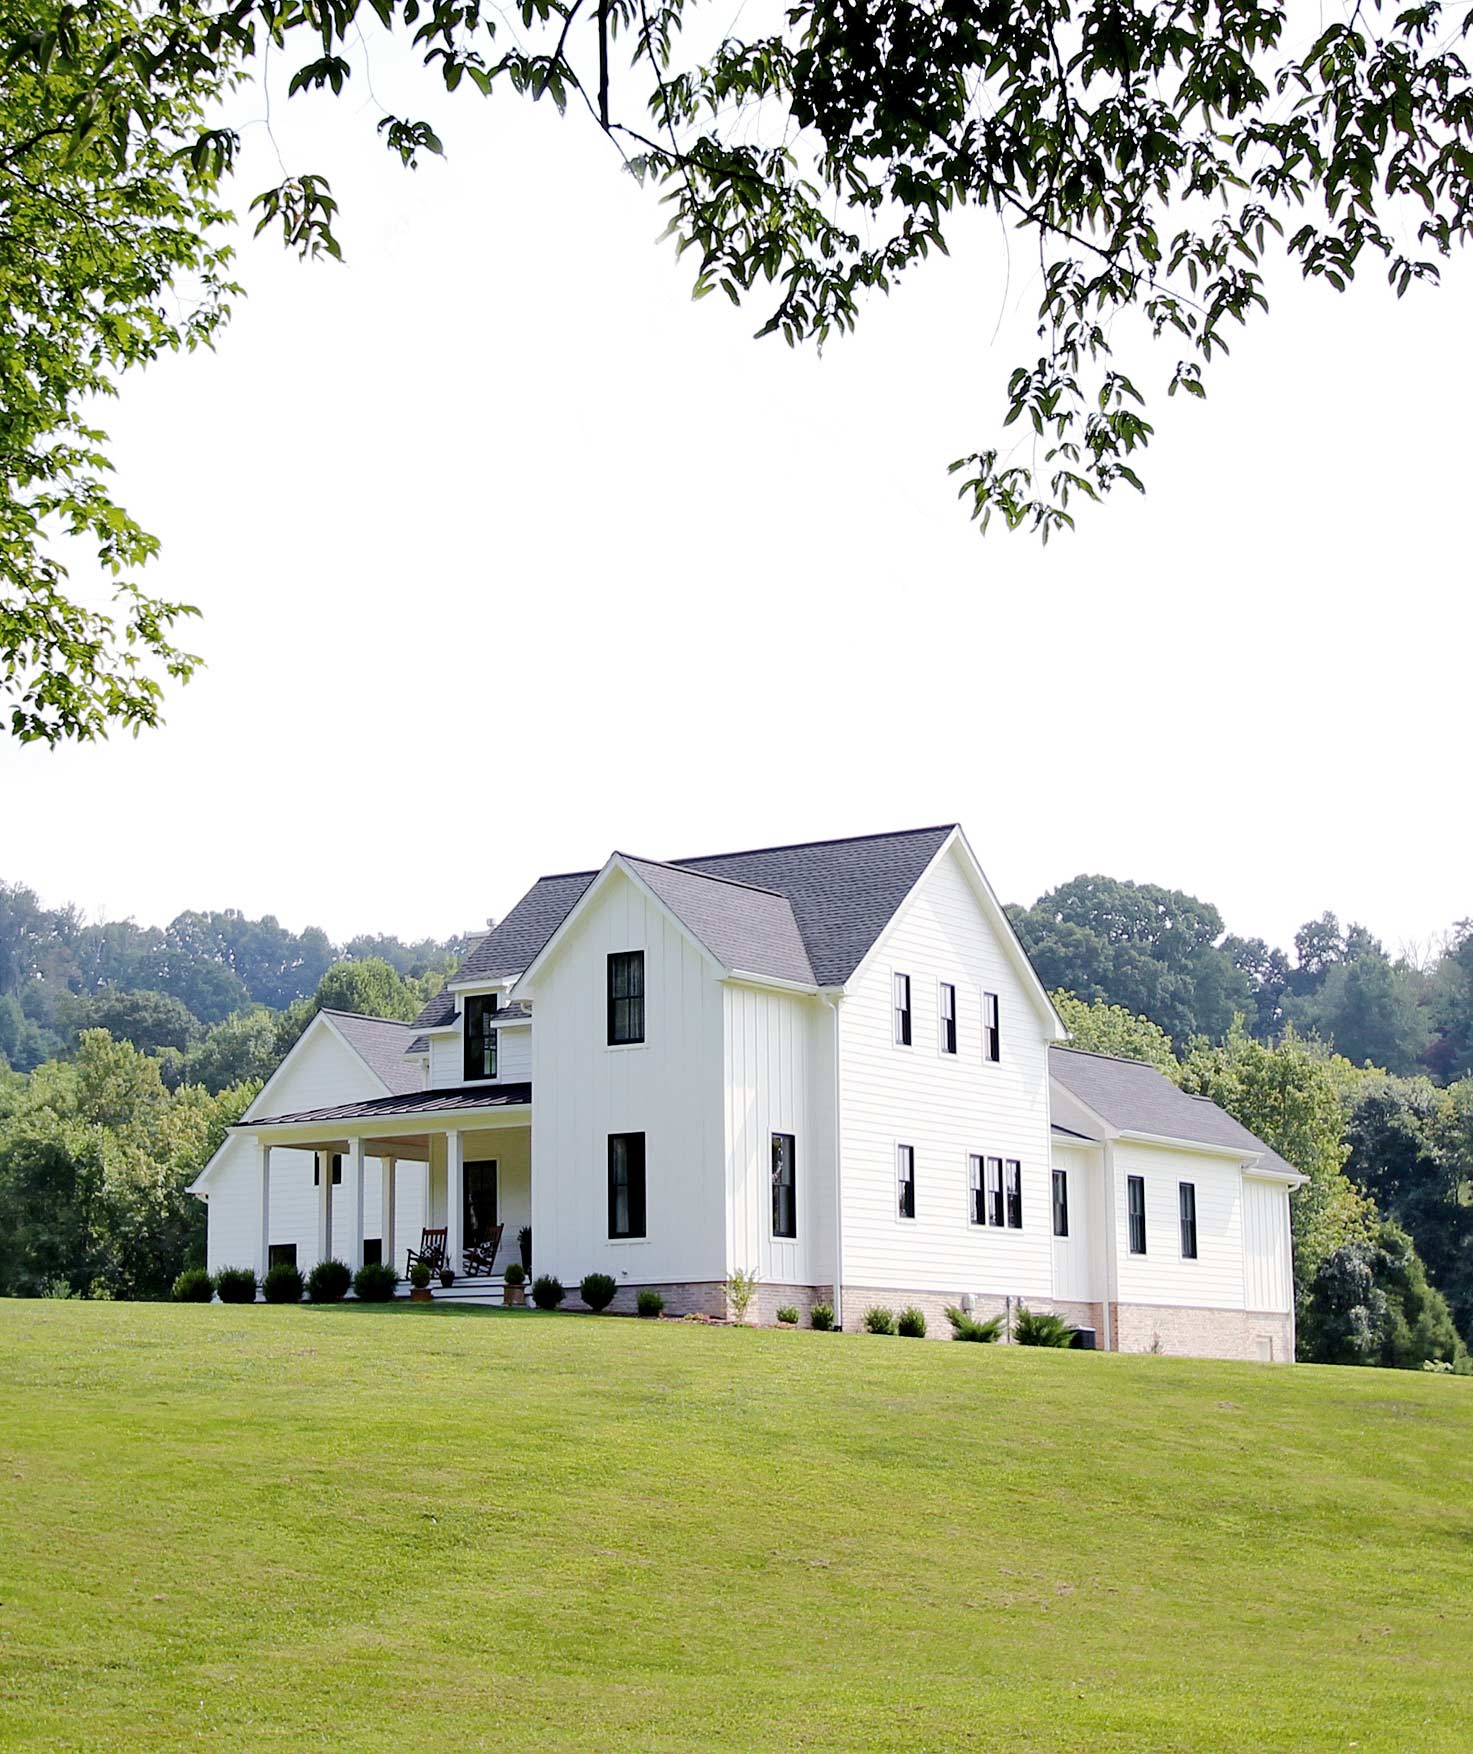 Our Modern Farmhouse: Exterior